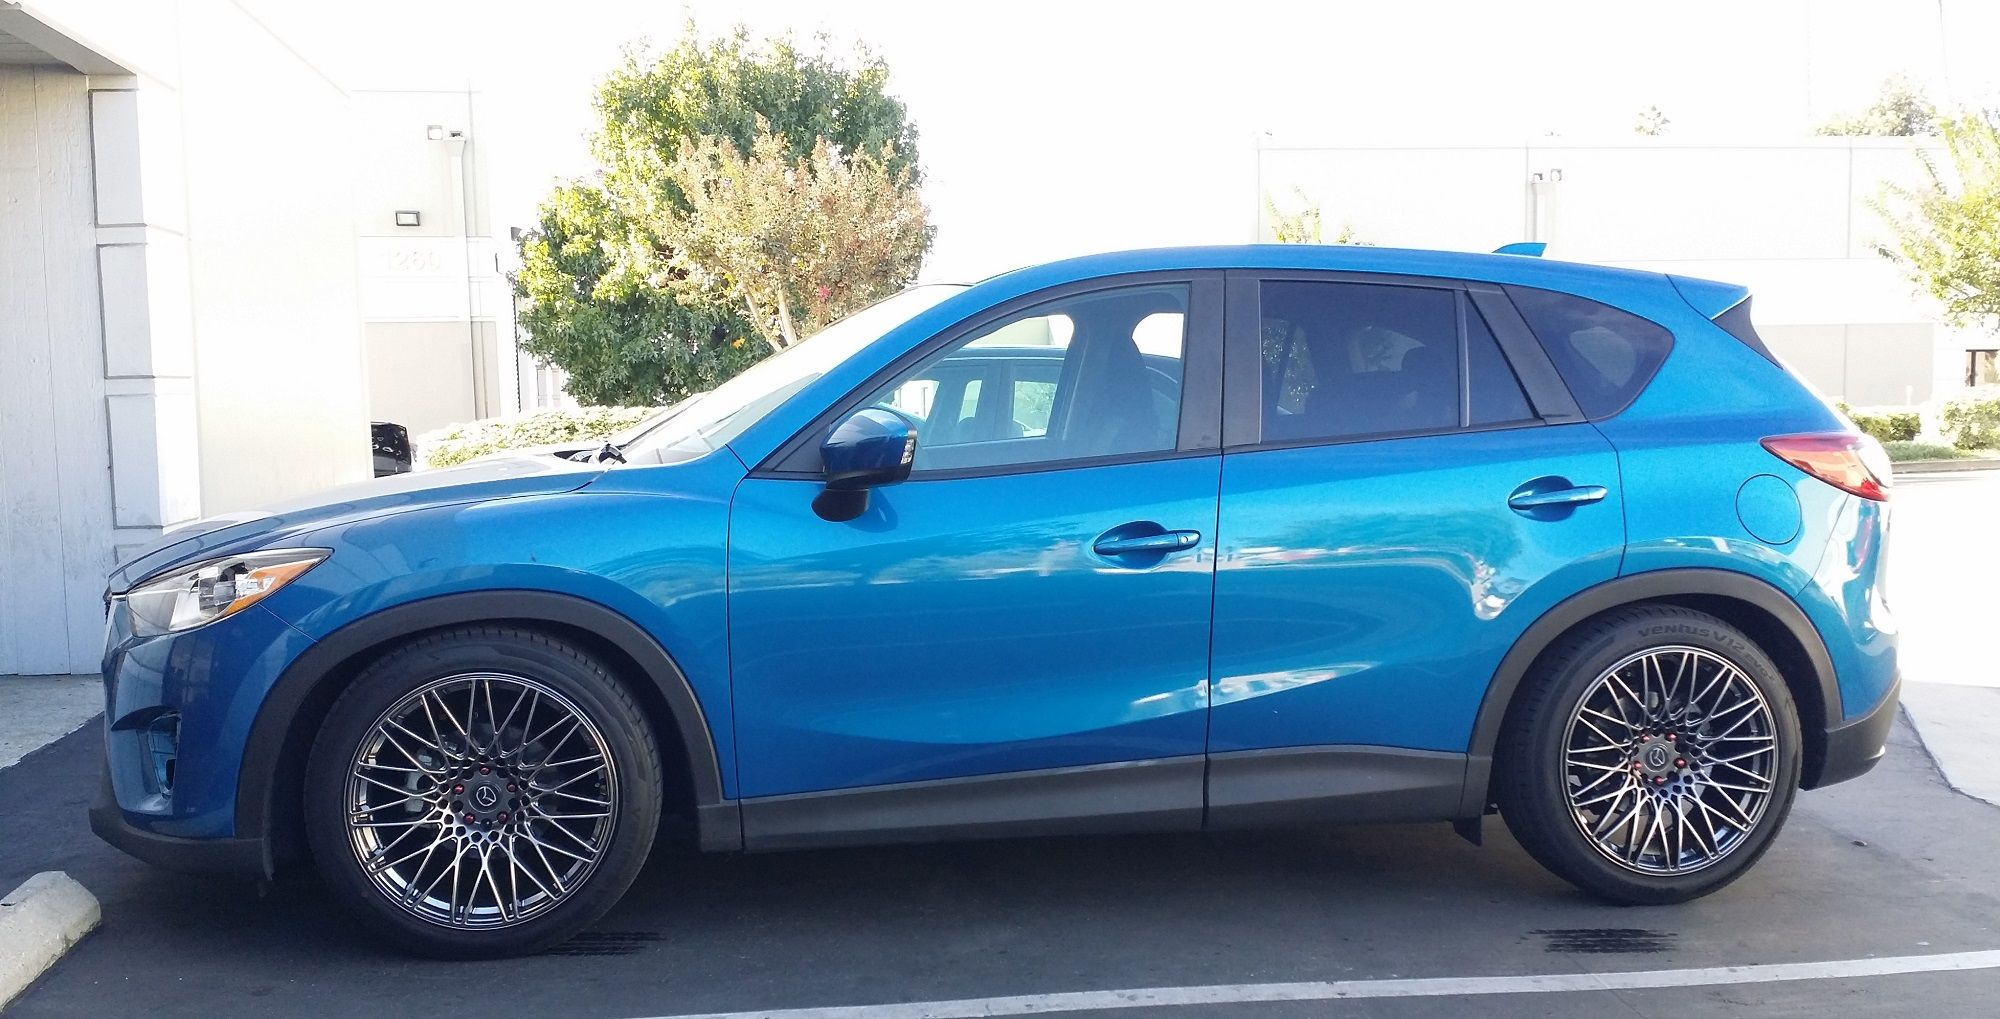 Lowered CX-5 Appreciation: Show me your drop! - Page 6